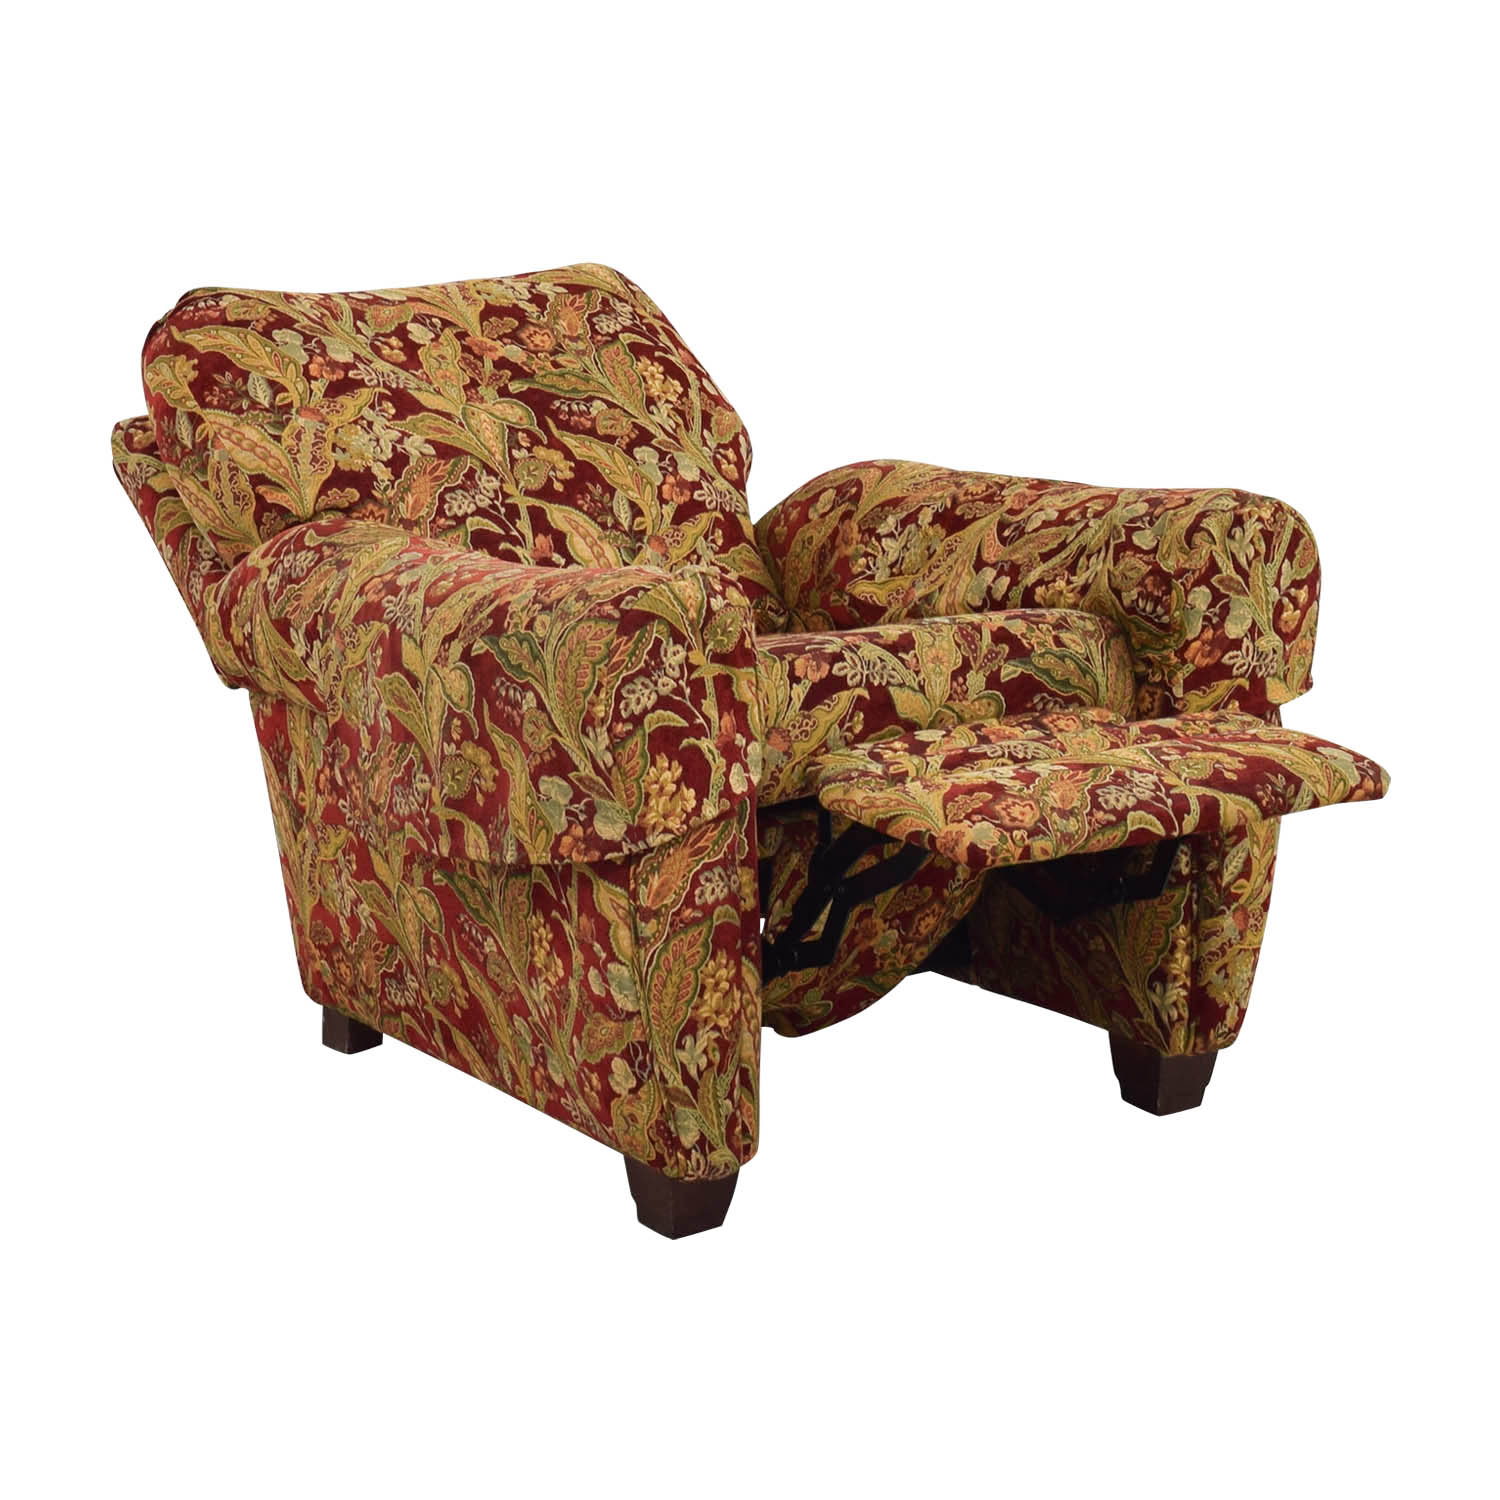 Lazy Boy Lazy Boy Burgundy Floral Recliner coupon